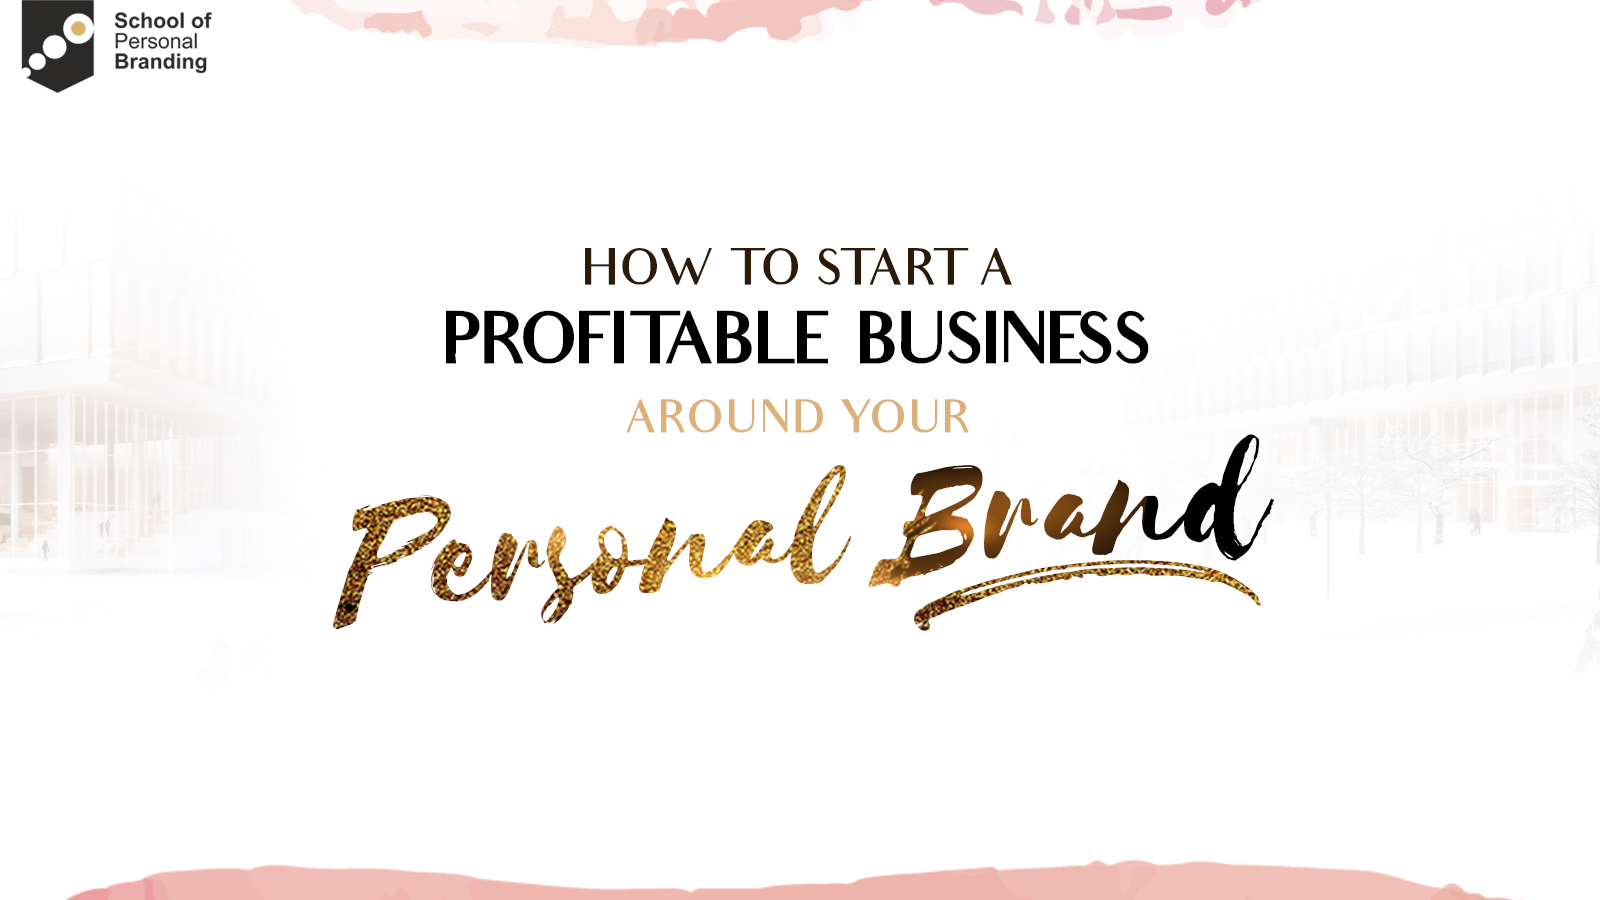 Start a Profitable Business Around Your Personal Brand